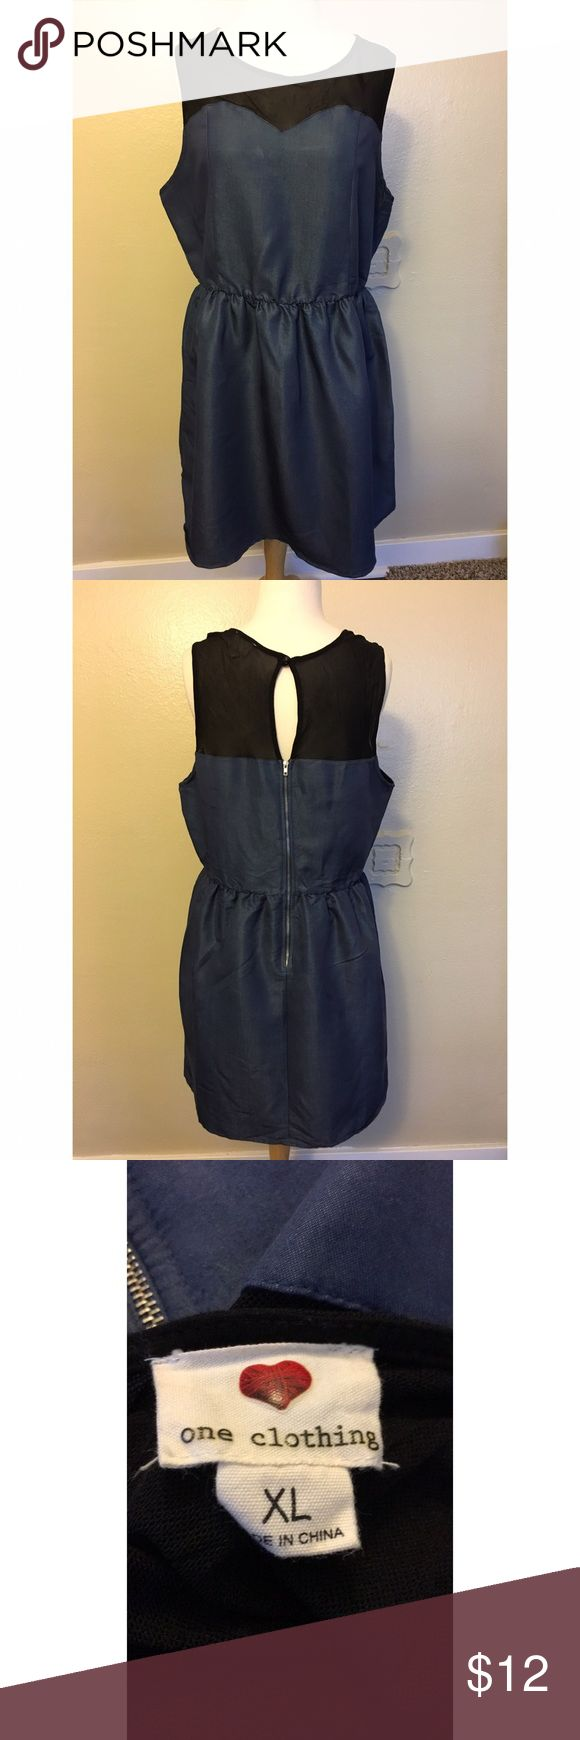 Denim Dress Denim skater dress with sweet heart line and black mesh attached to top. Zipper closure to waist along with key hole button closure. Elastic waist line. Knee length. one clothing Dresses